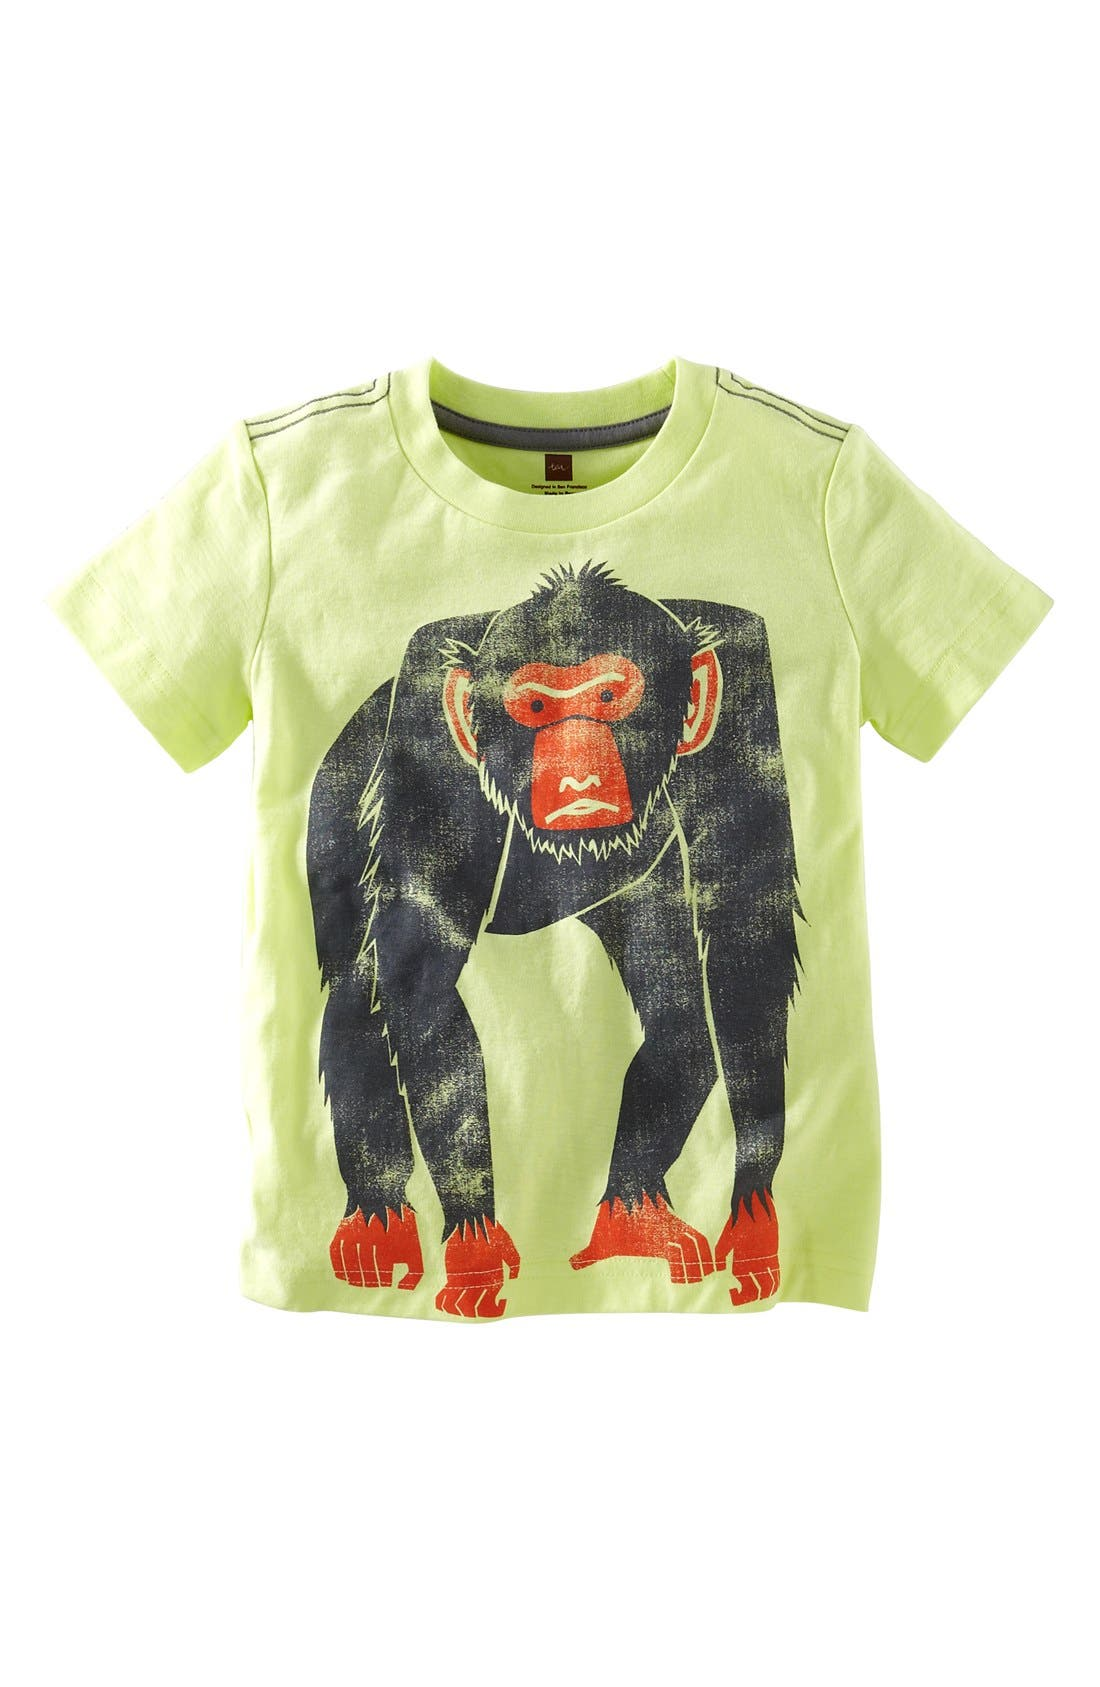 Main Image - Tea Collection 'Barbary Ape' Graphic T-Shirt (Little Boys & Big Boys)